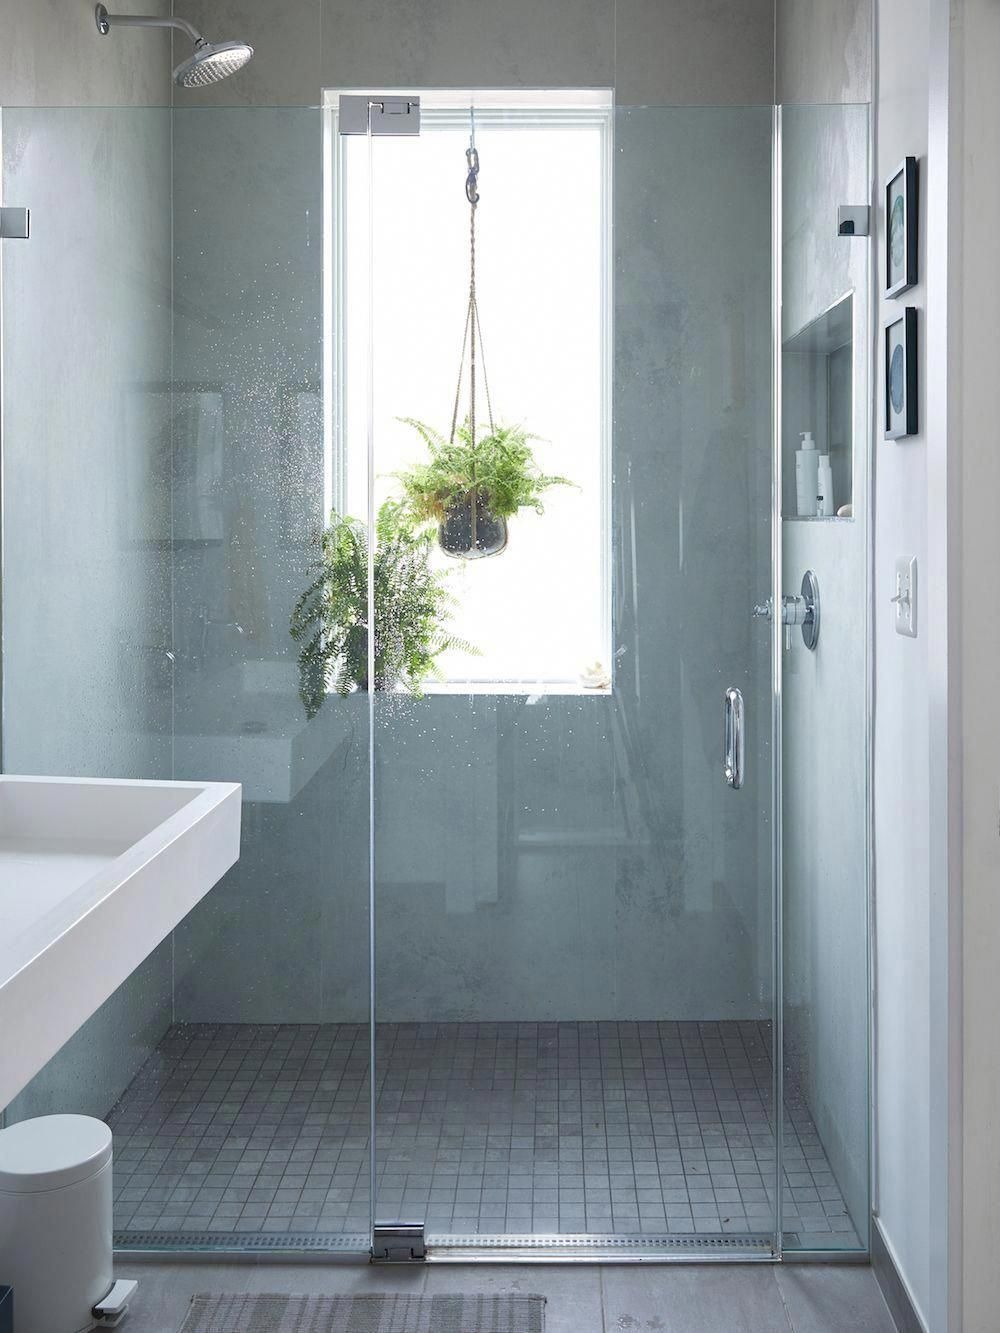 To Keep With The Modern Bathroom Style We Re Going For Pick Examples Of These Items In Keeping Wi Modern Style Bathroom Modern Bathroom Design Modern Bathroom